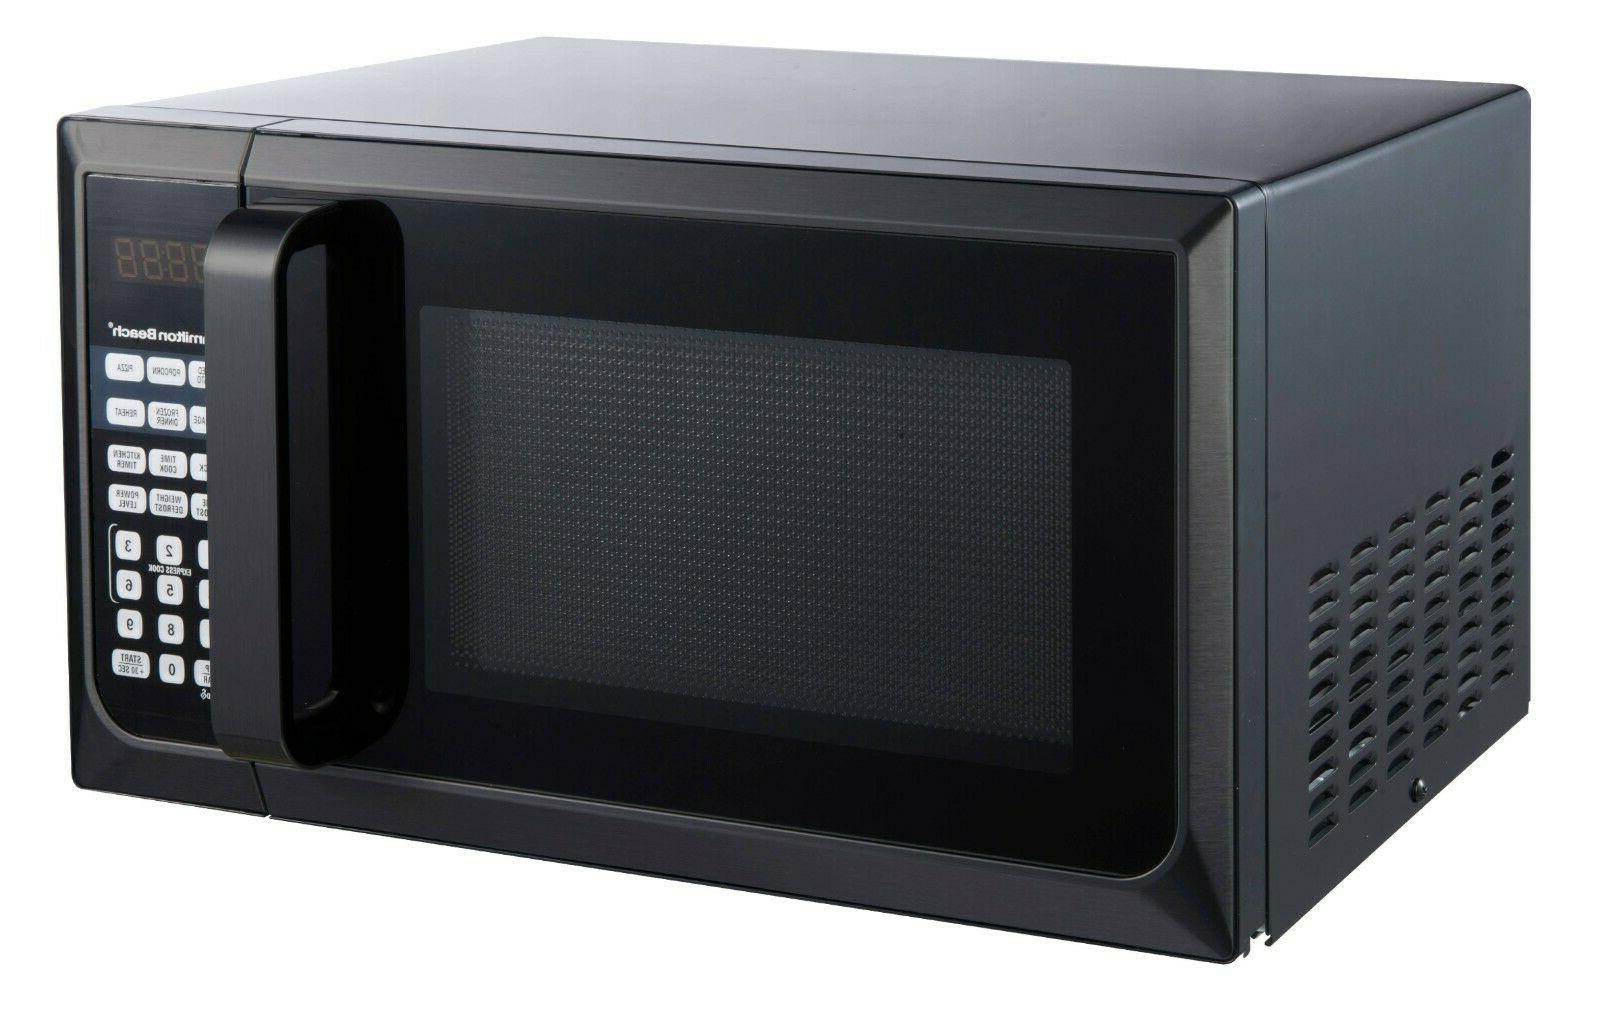 Countertop Stainless Home Office 900W BLACK